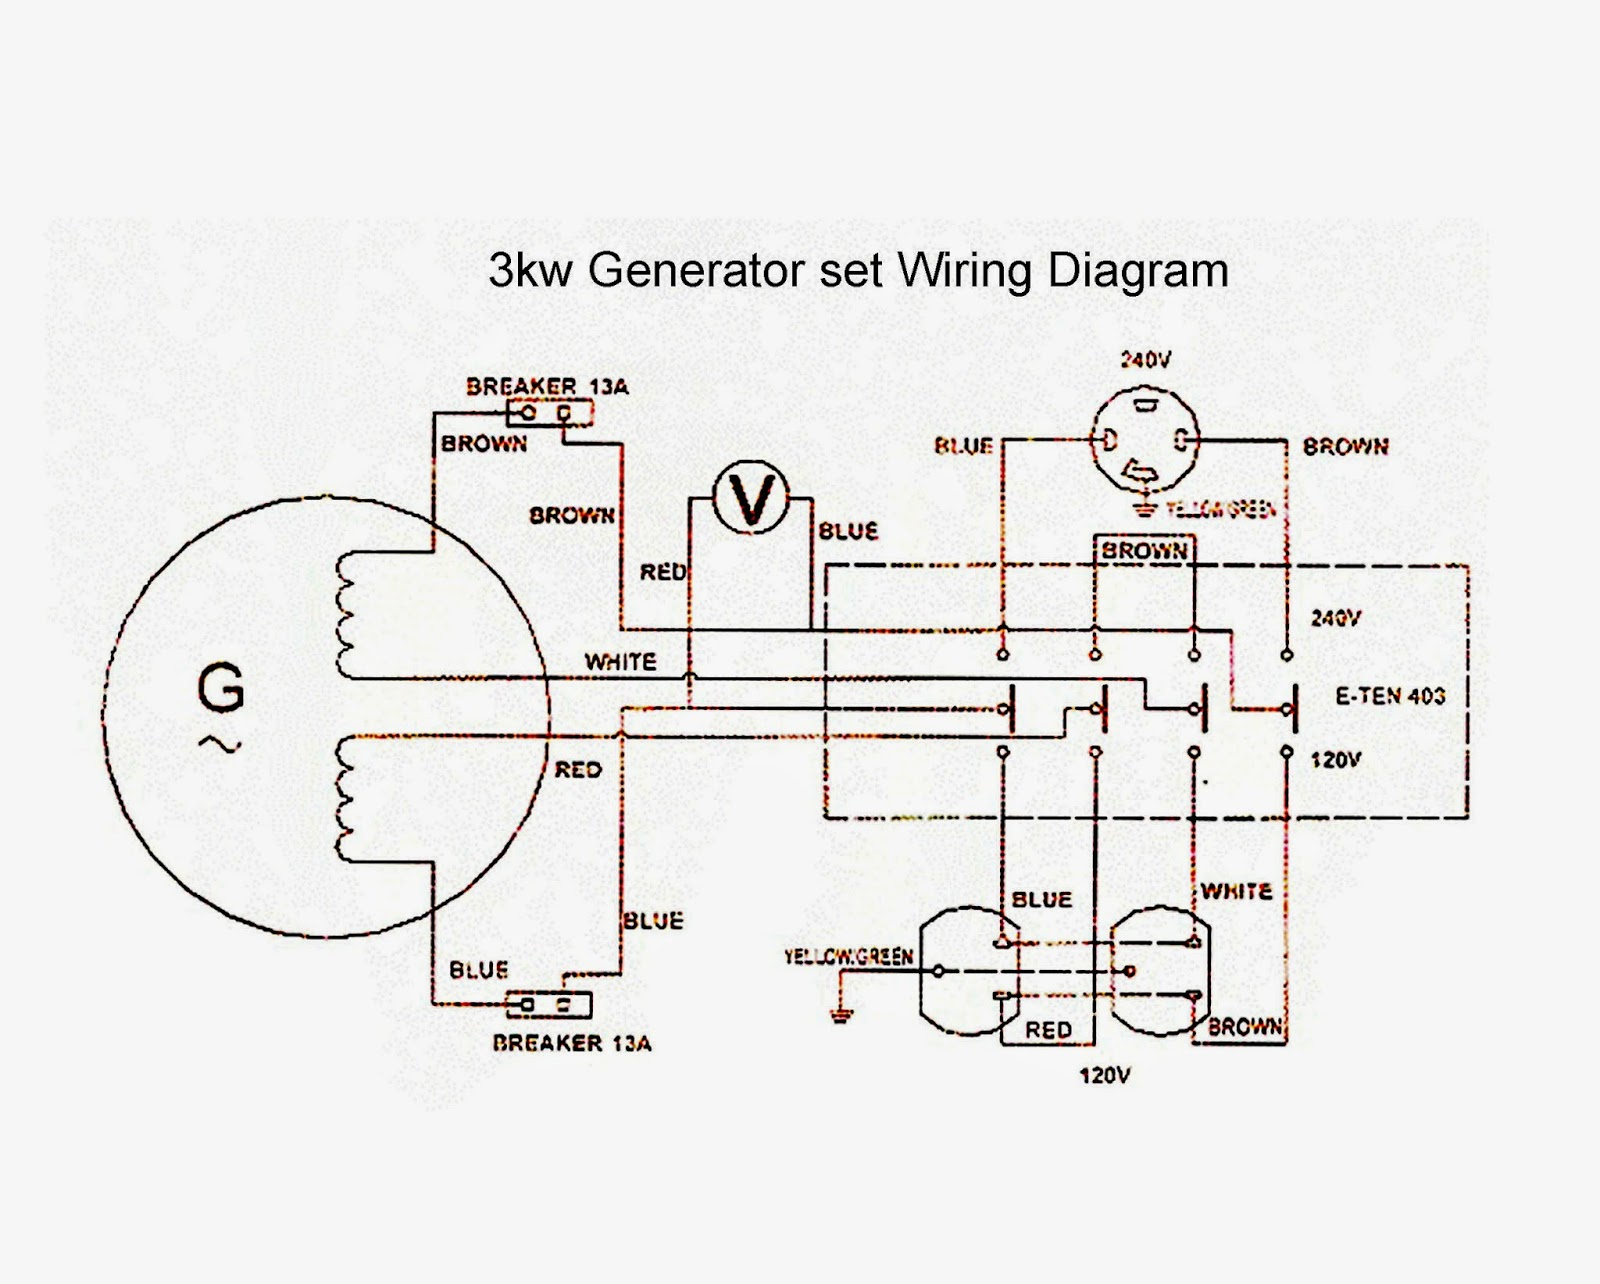 small resolution of onan emerald generator wiring diagram free download wiring library rh 95 skriptoase de 4kw onan generator wiring diagram generator onan wiring circuit